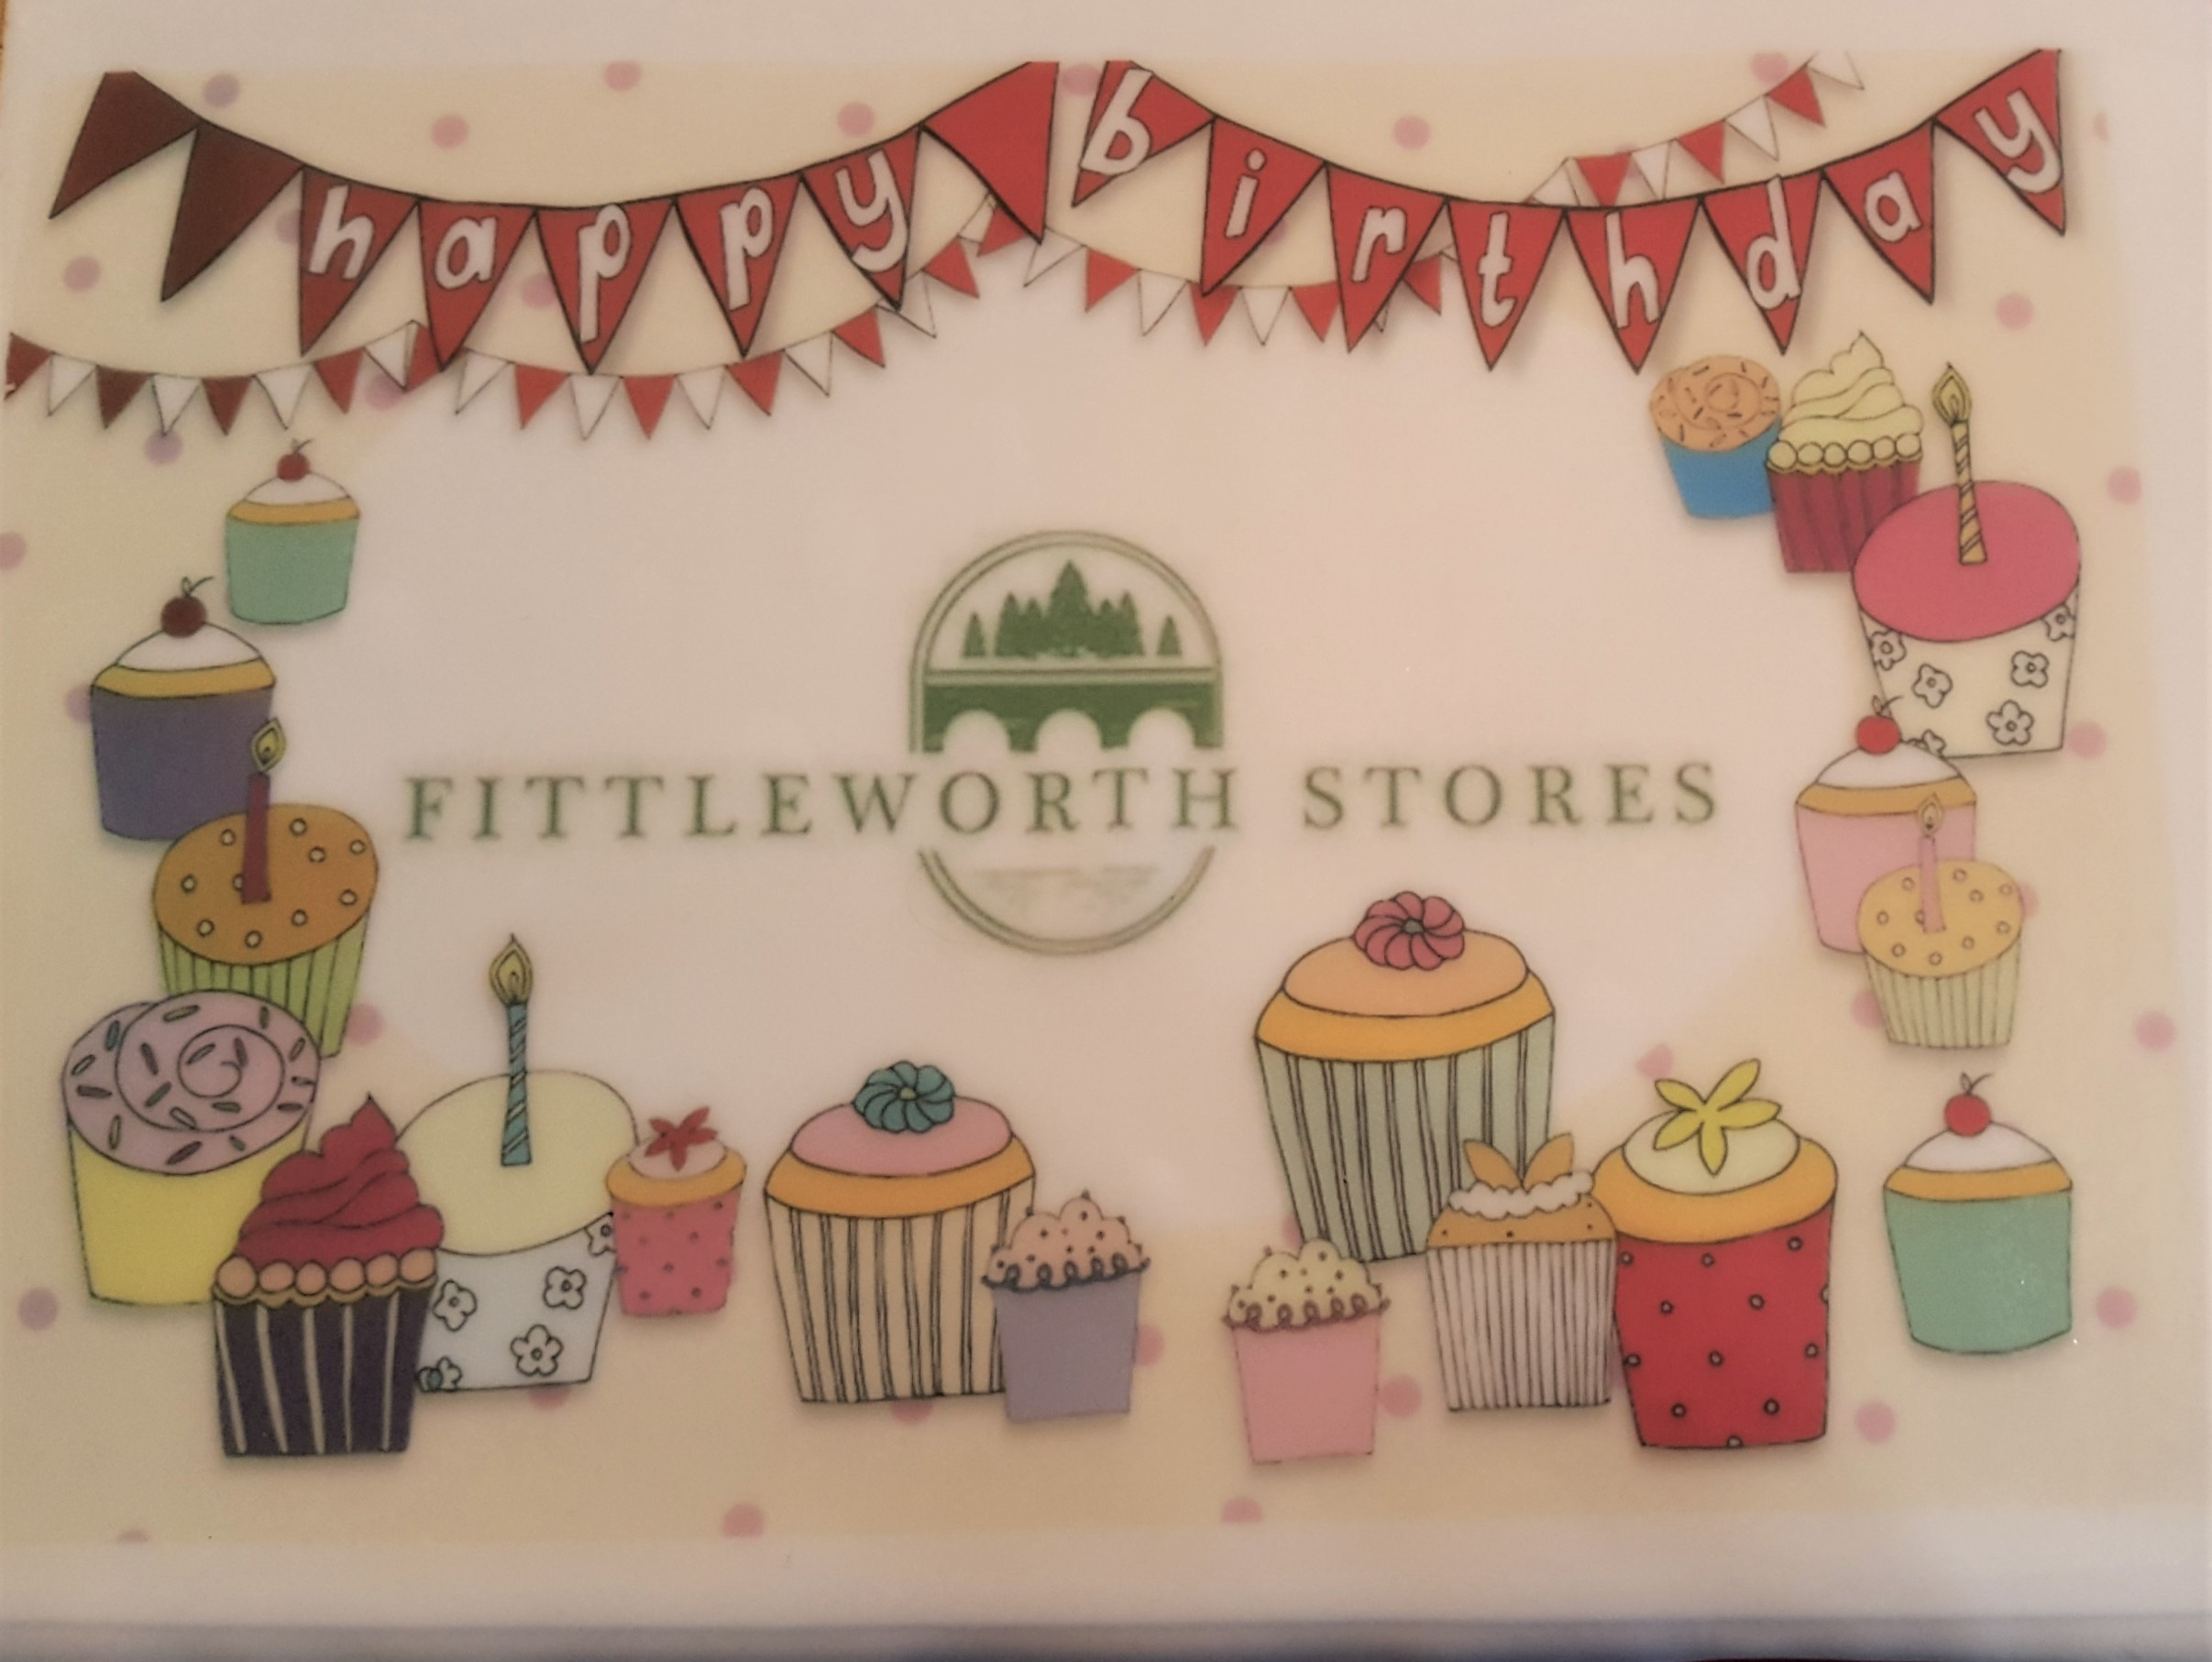 Fittleworth Stores 1st Birthday - the cake!